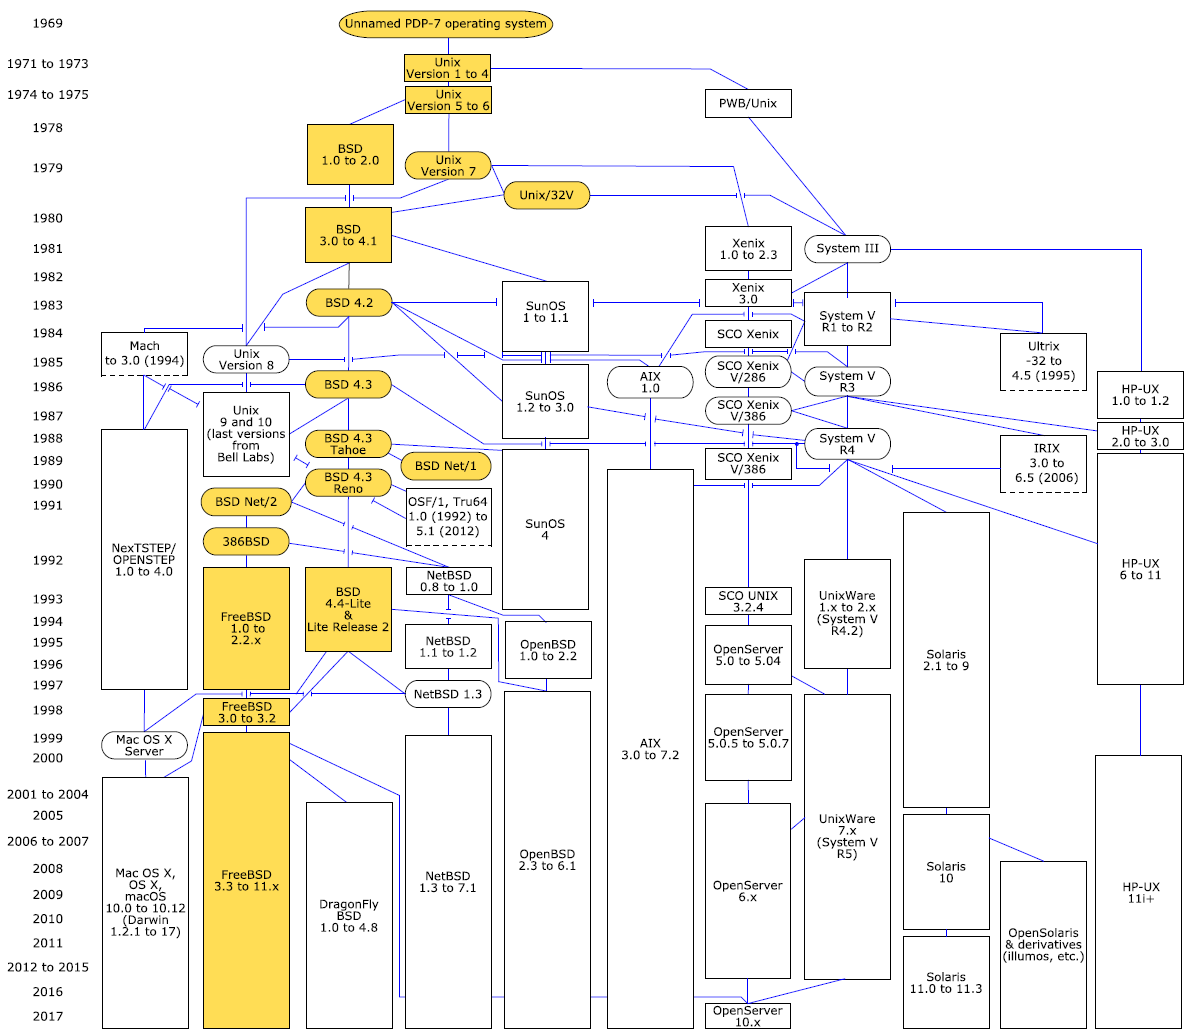 A simplified diagram of Unix variants and releases related through code. We studied the lineage of the highlighted elements